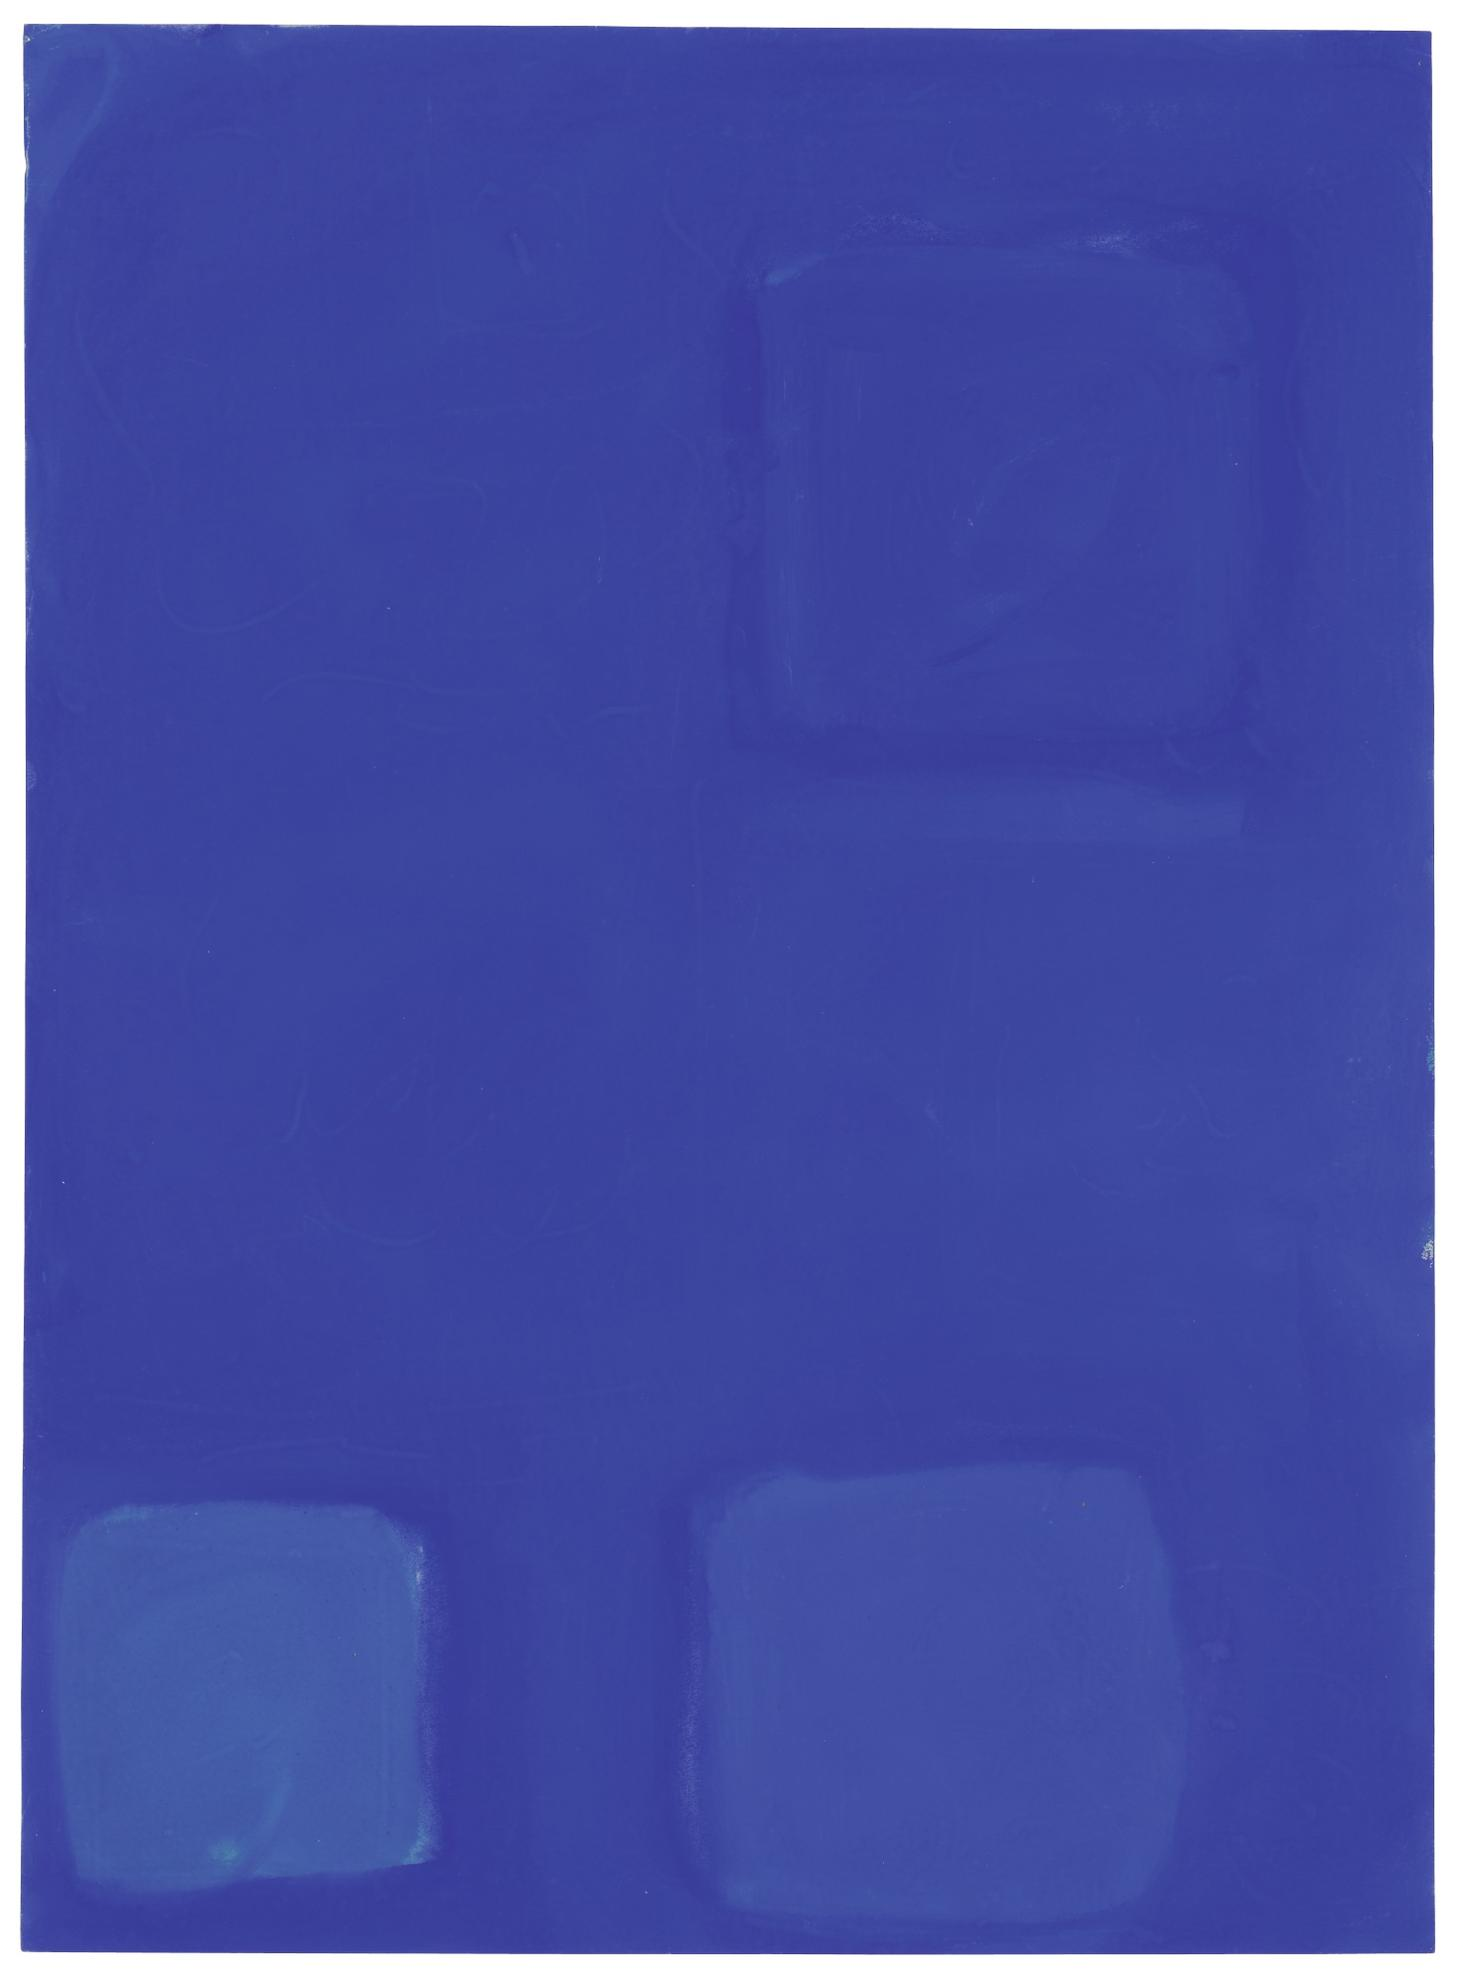 Patrick Heron-Three Blues In Blue: January 19 1961-1961